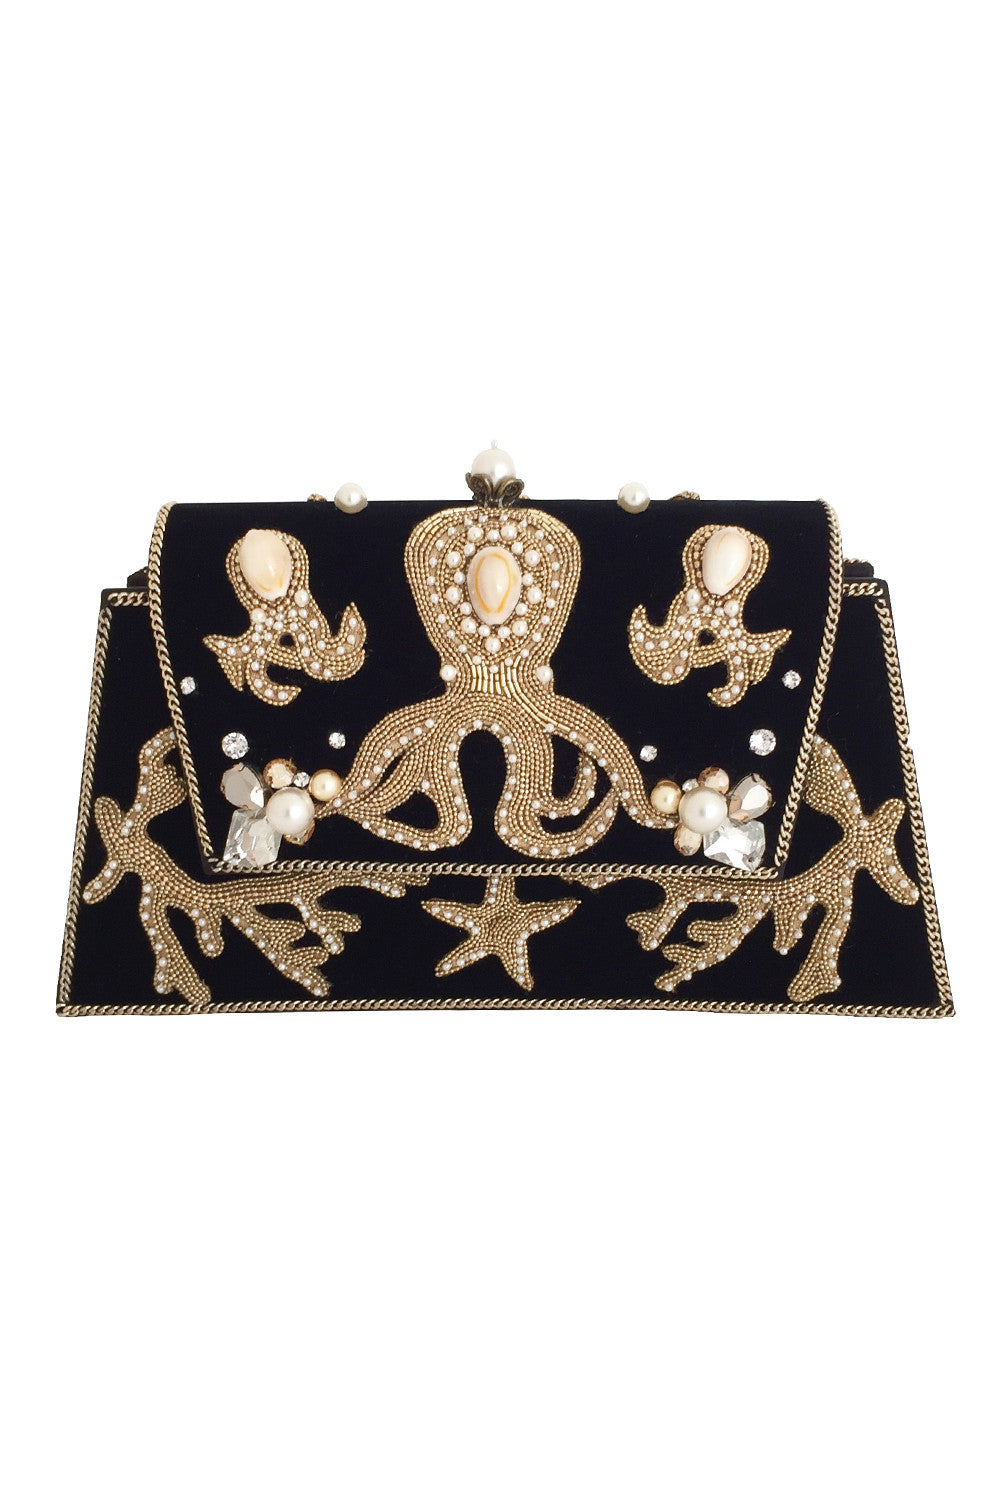 MEA PULPO Clutch 1 in Black & Gold